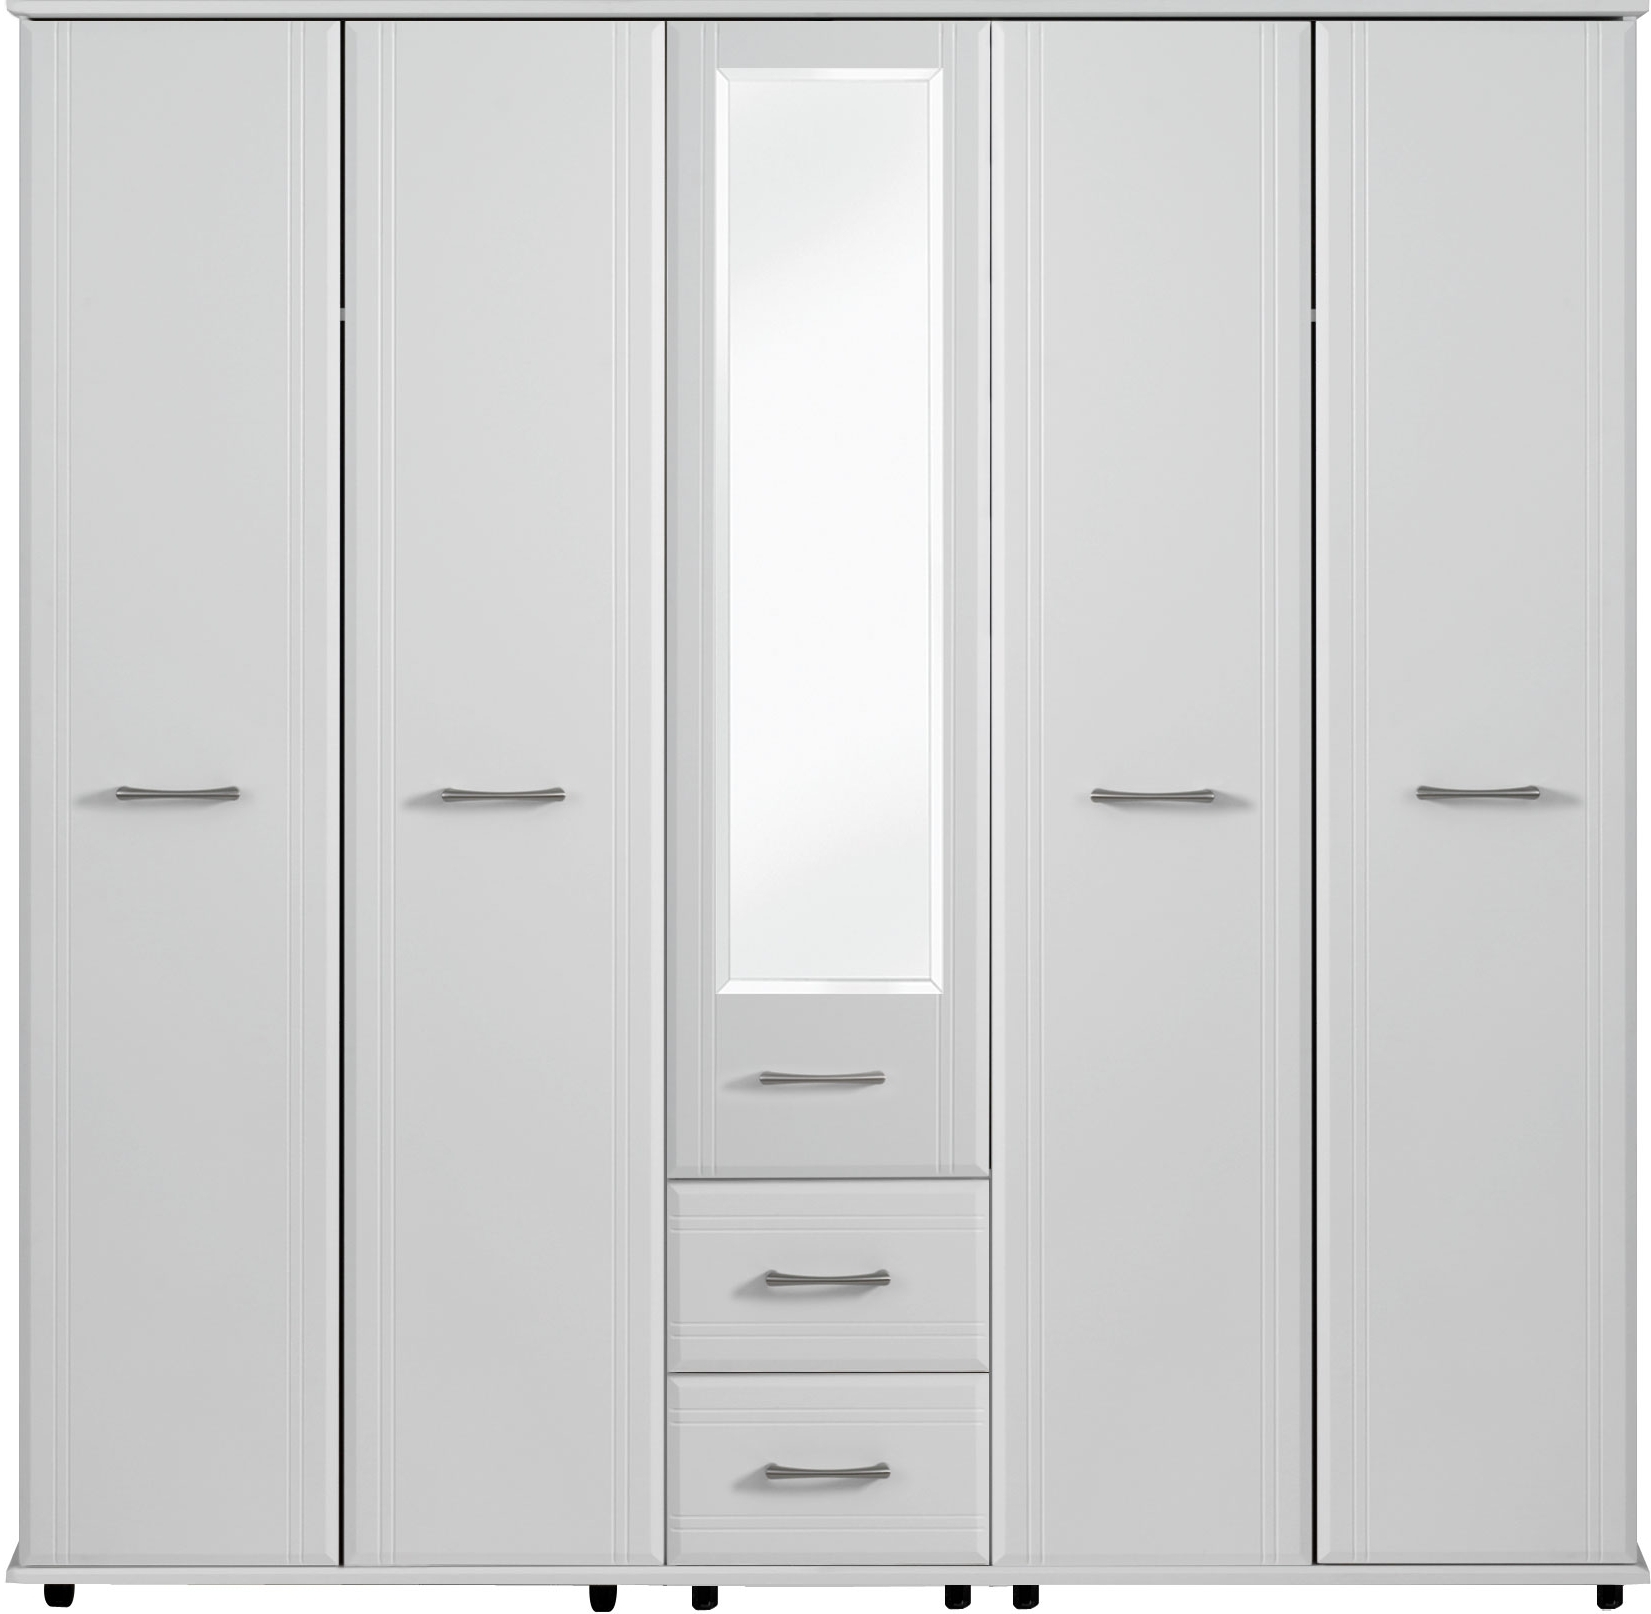 2018 5 Door Mirrored Wardrobes With Dorchester 5 Door Wardrobe 1 Mirror 2 Drawers (View 2 of 15)